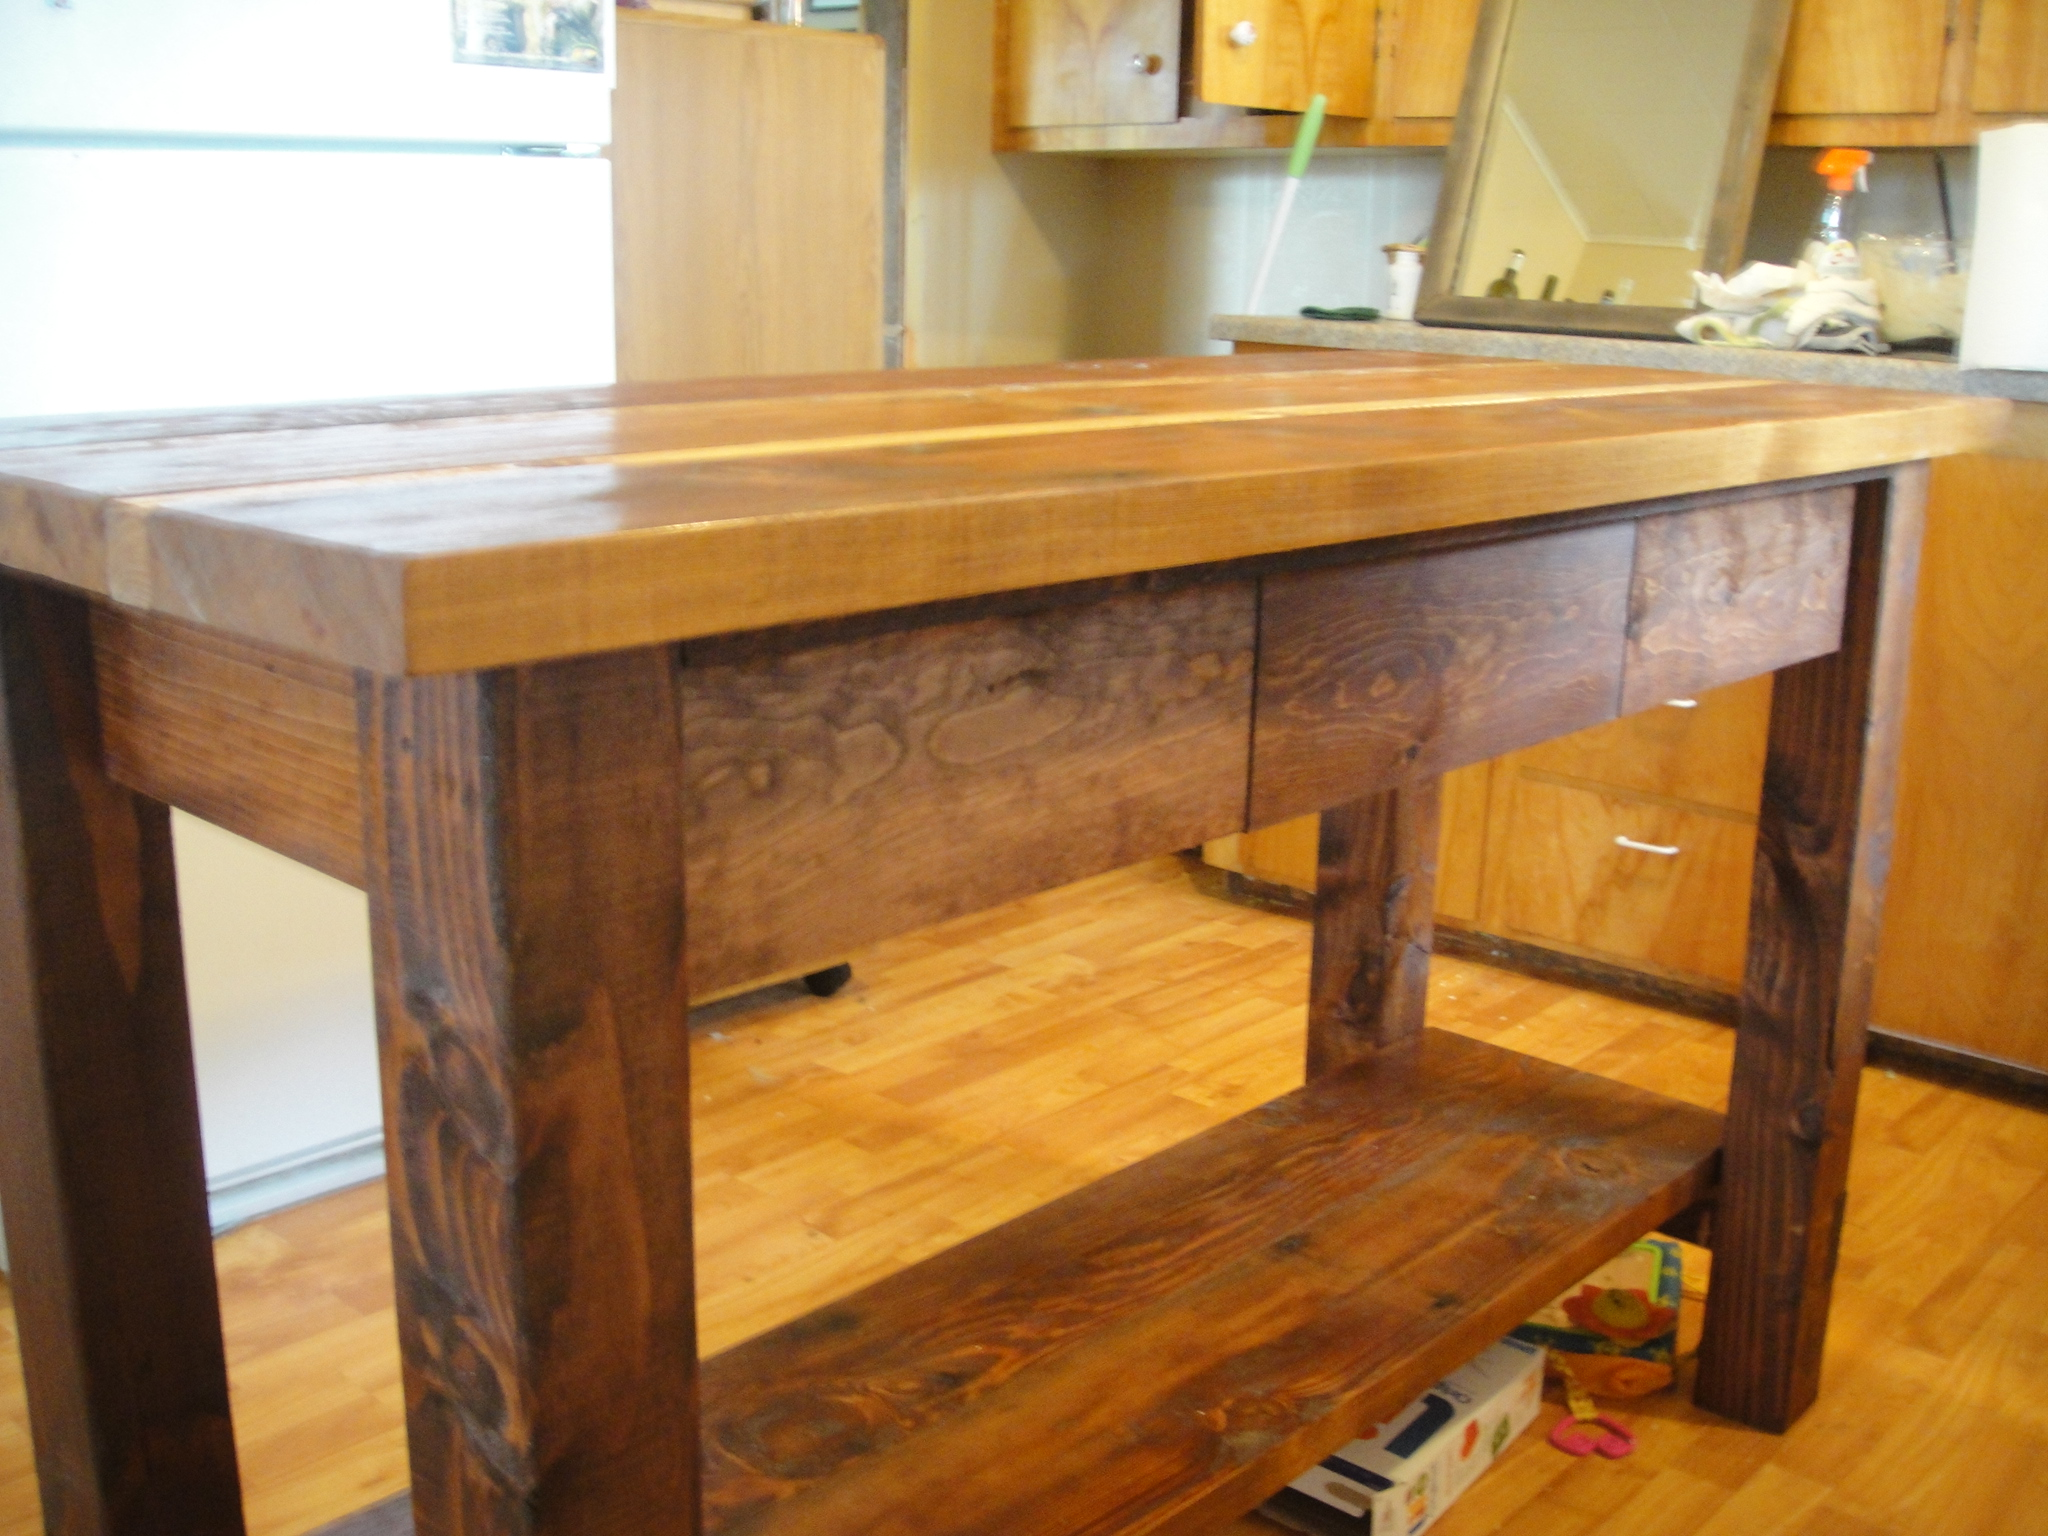 Diy kitchen island design plans - Kitchen Island From Reclaimed Wood